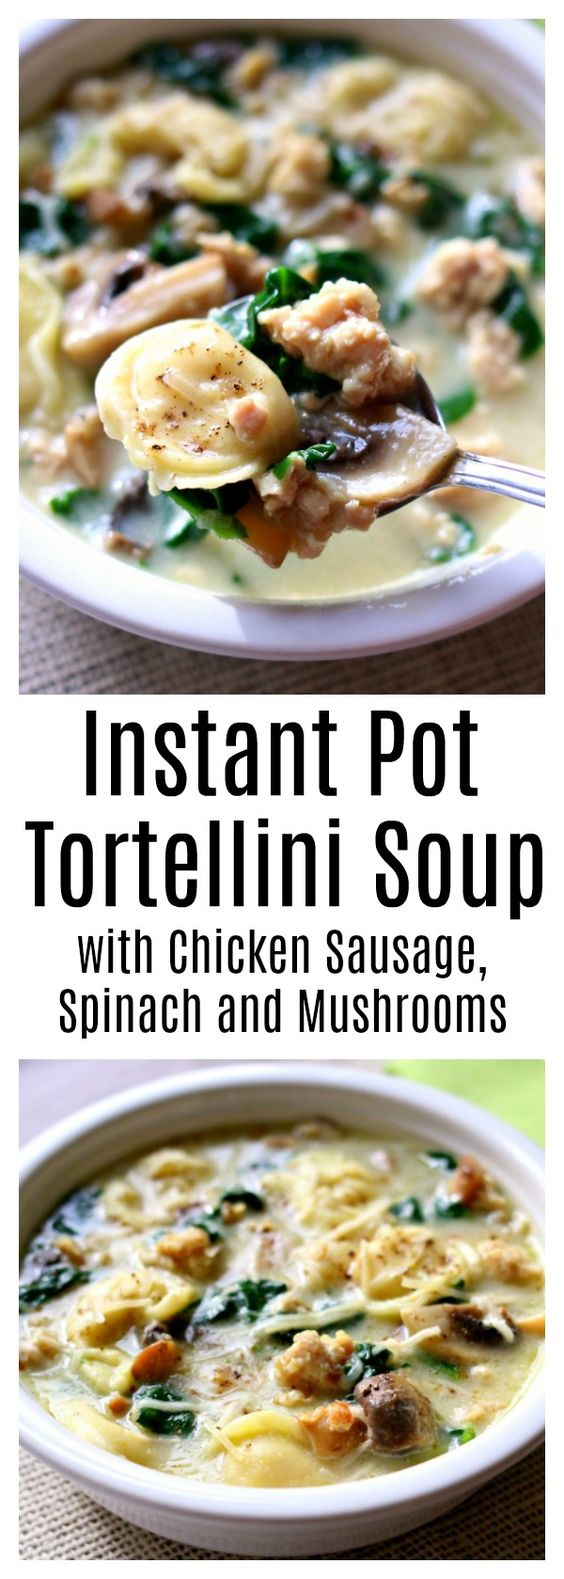 instant pot tortellini soup with parmesan, chicken sausage and mushrooms